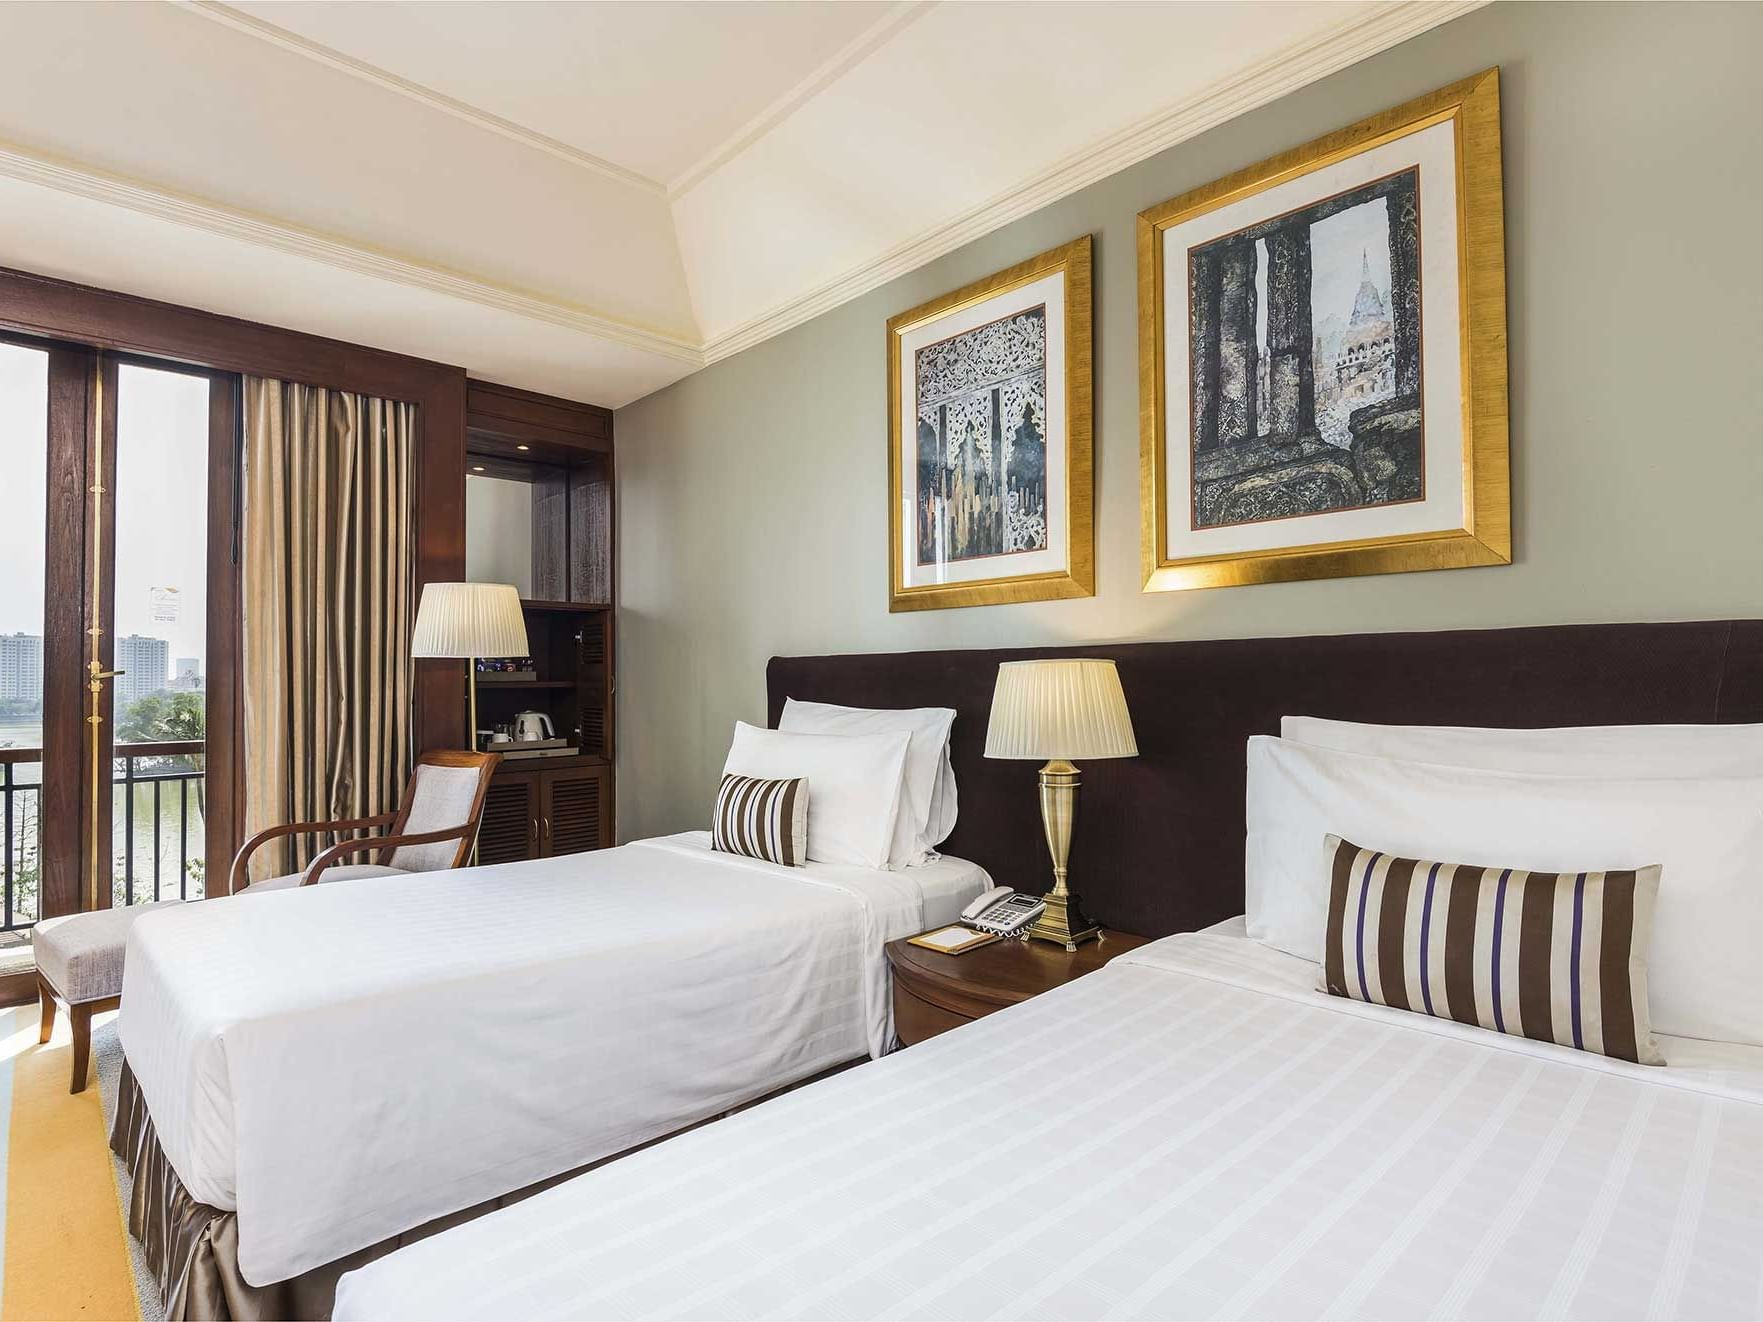 View of beds in Grand Deluxe Room with Lake Or Pagoda View at Chatrium Hotel Royal Lake